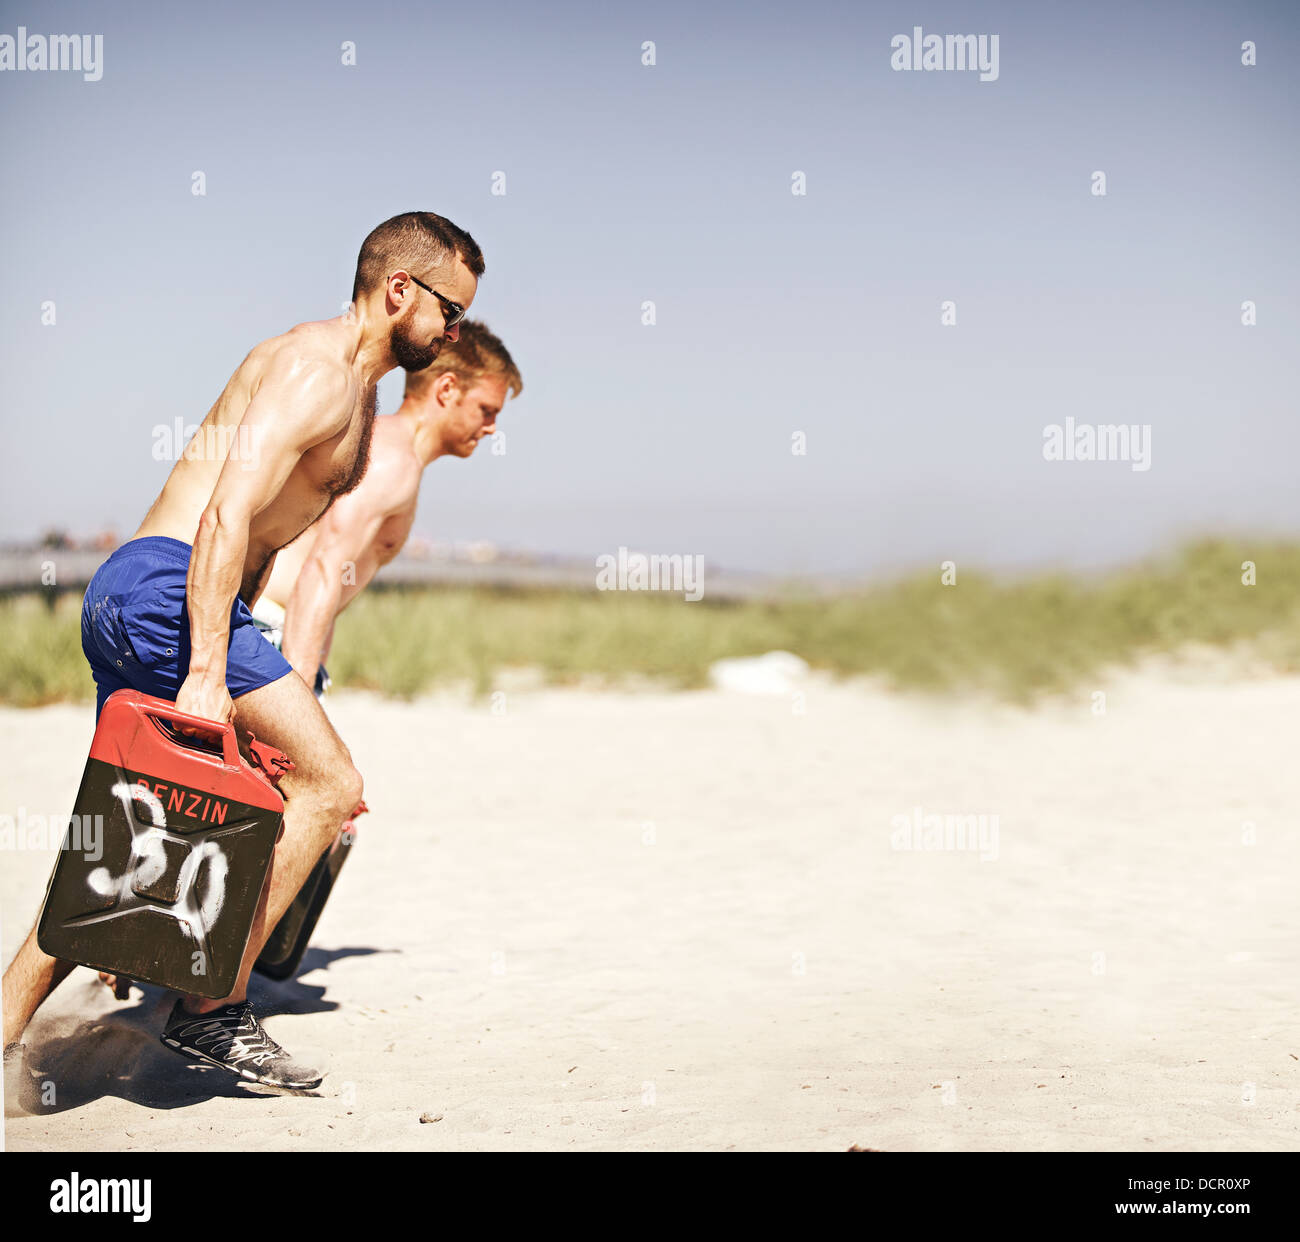 Men lifting heavy jerrycans during a crossfit workout on the beach - Stock Image